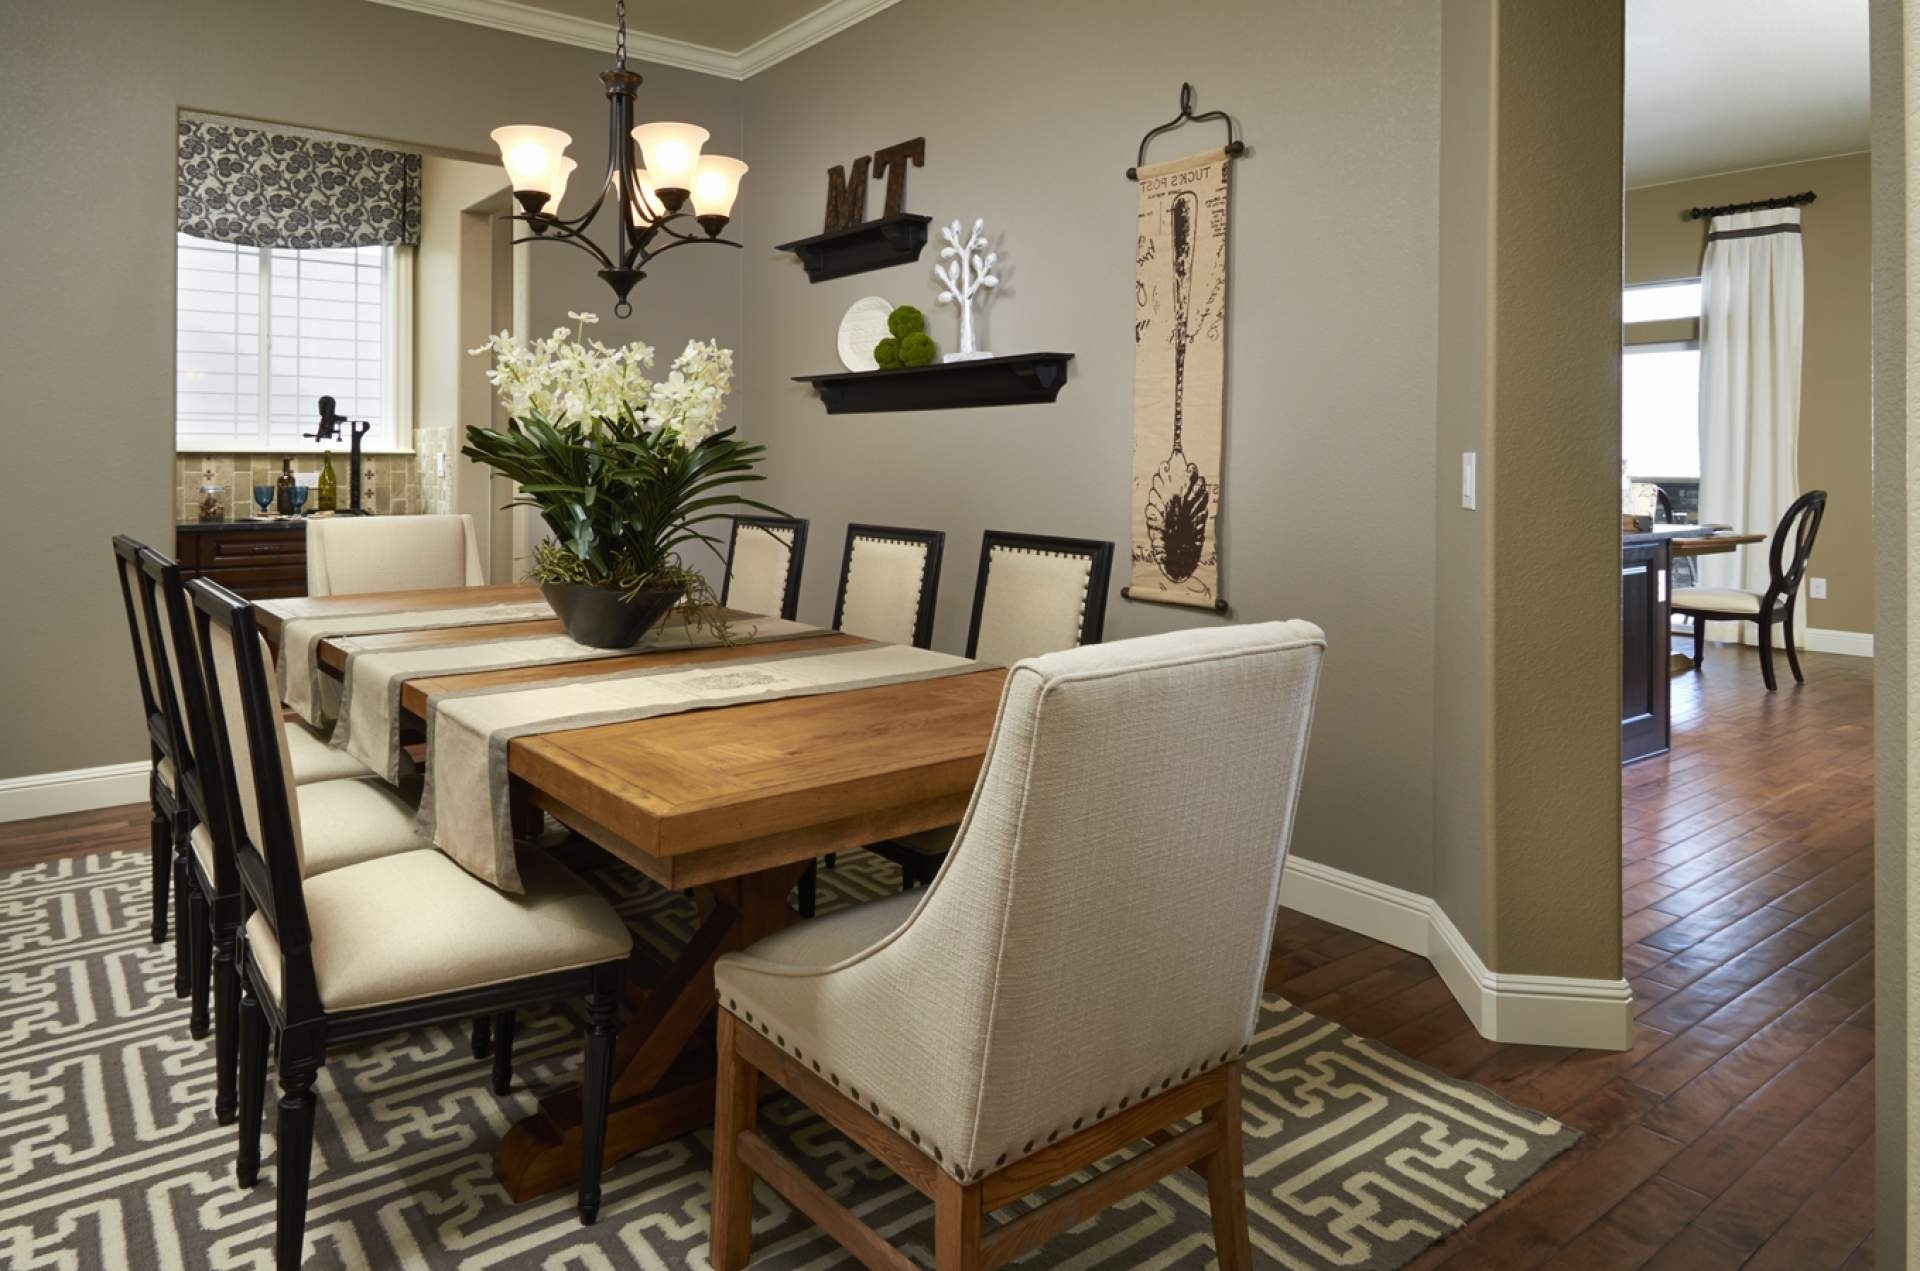 Ideas Dining Room Decor Home Enchanting Idea Dining Room Wall In Recent Dining Room Wall Accents (Gallery 1 of 15)